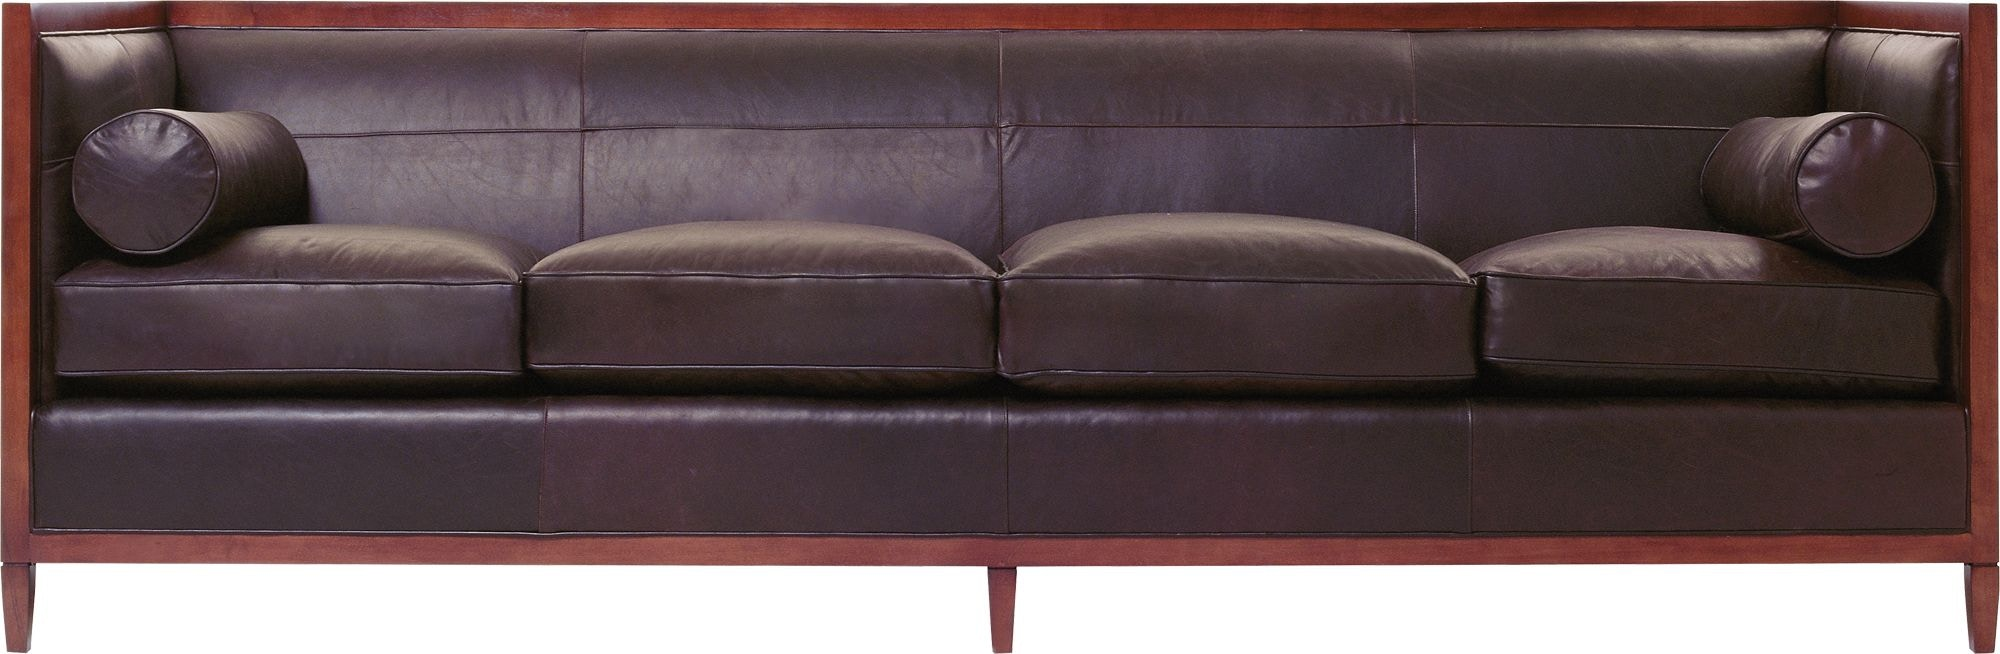 archetype furniture. baker furniture classics upholstery archetype wood banded sofa 637098 r